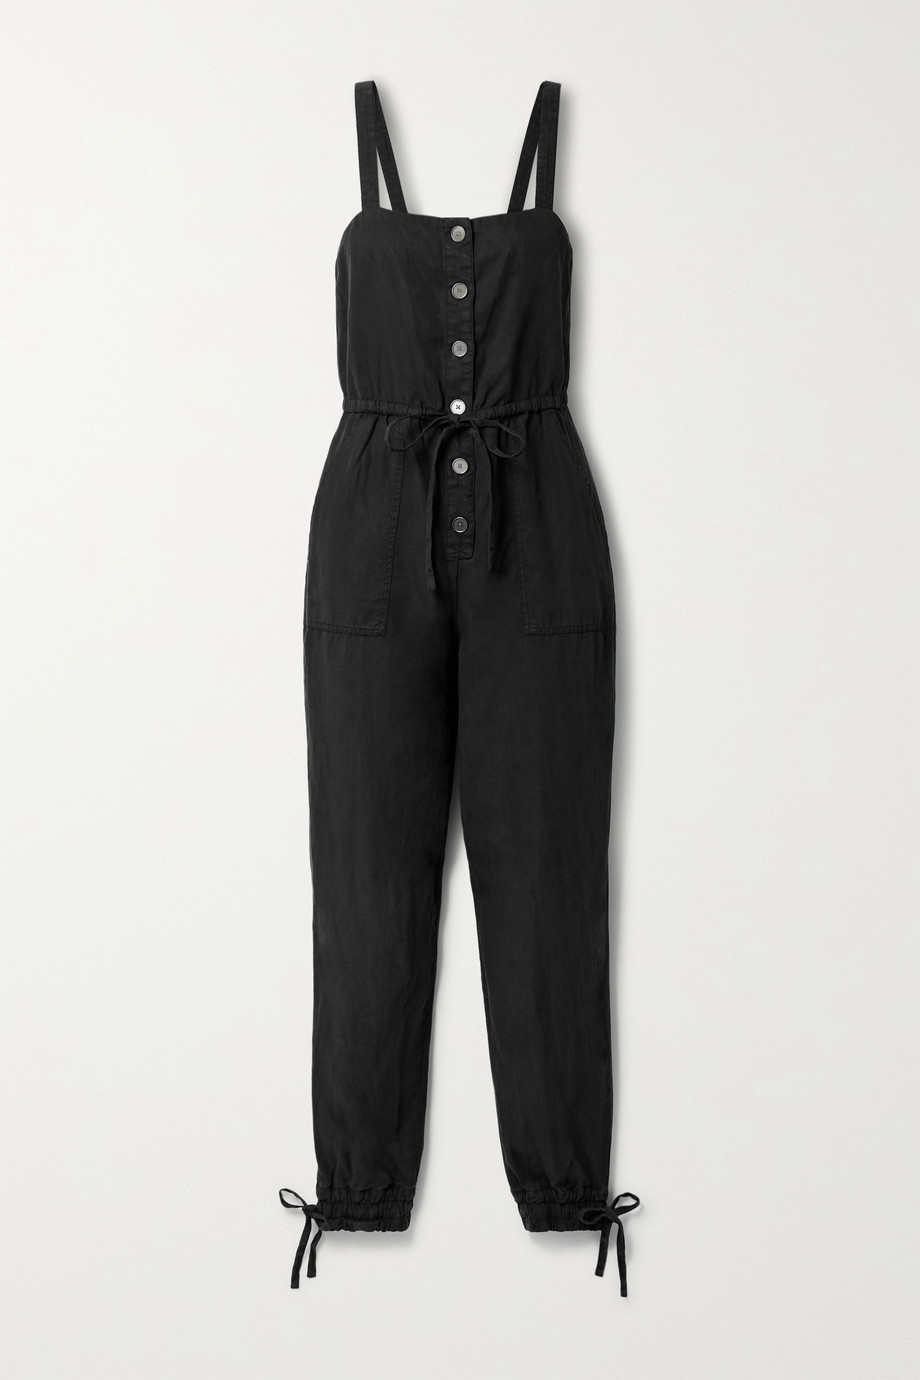 Alice + Olivia Tiana Lyocell, linen and cotton-blend jumpsuit